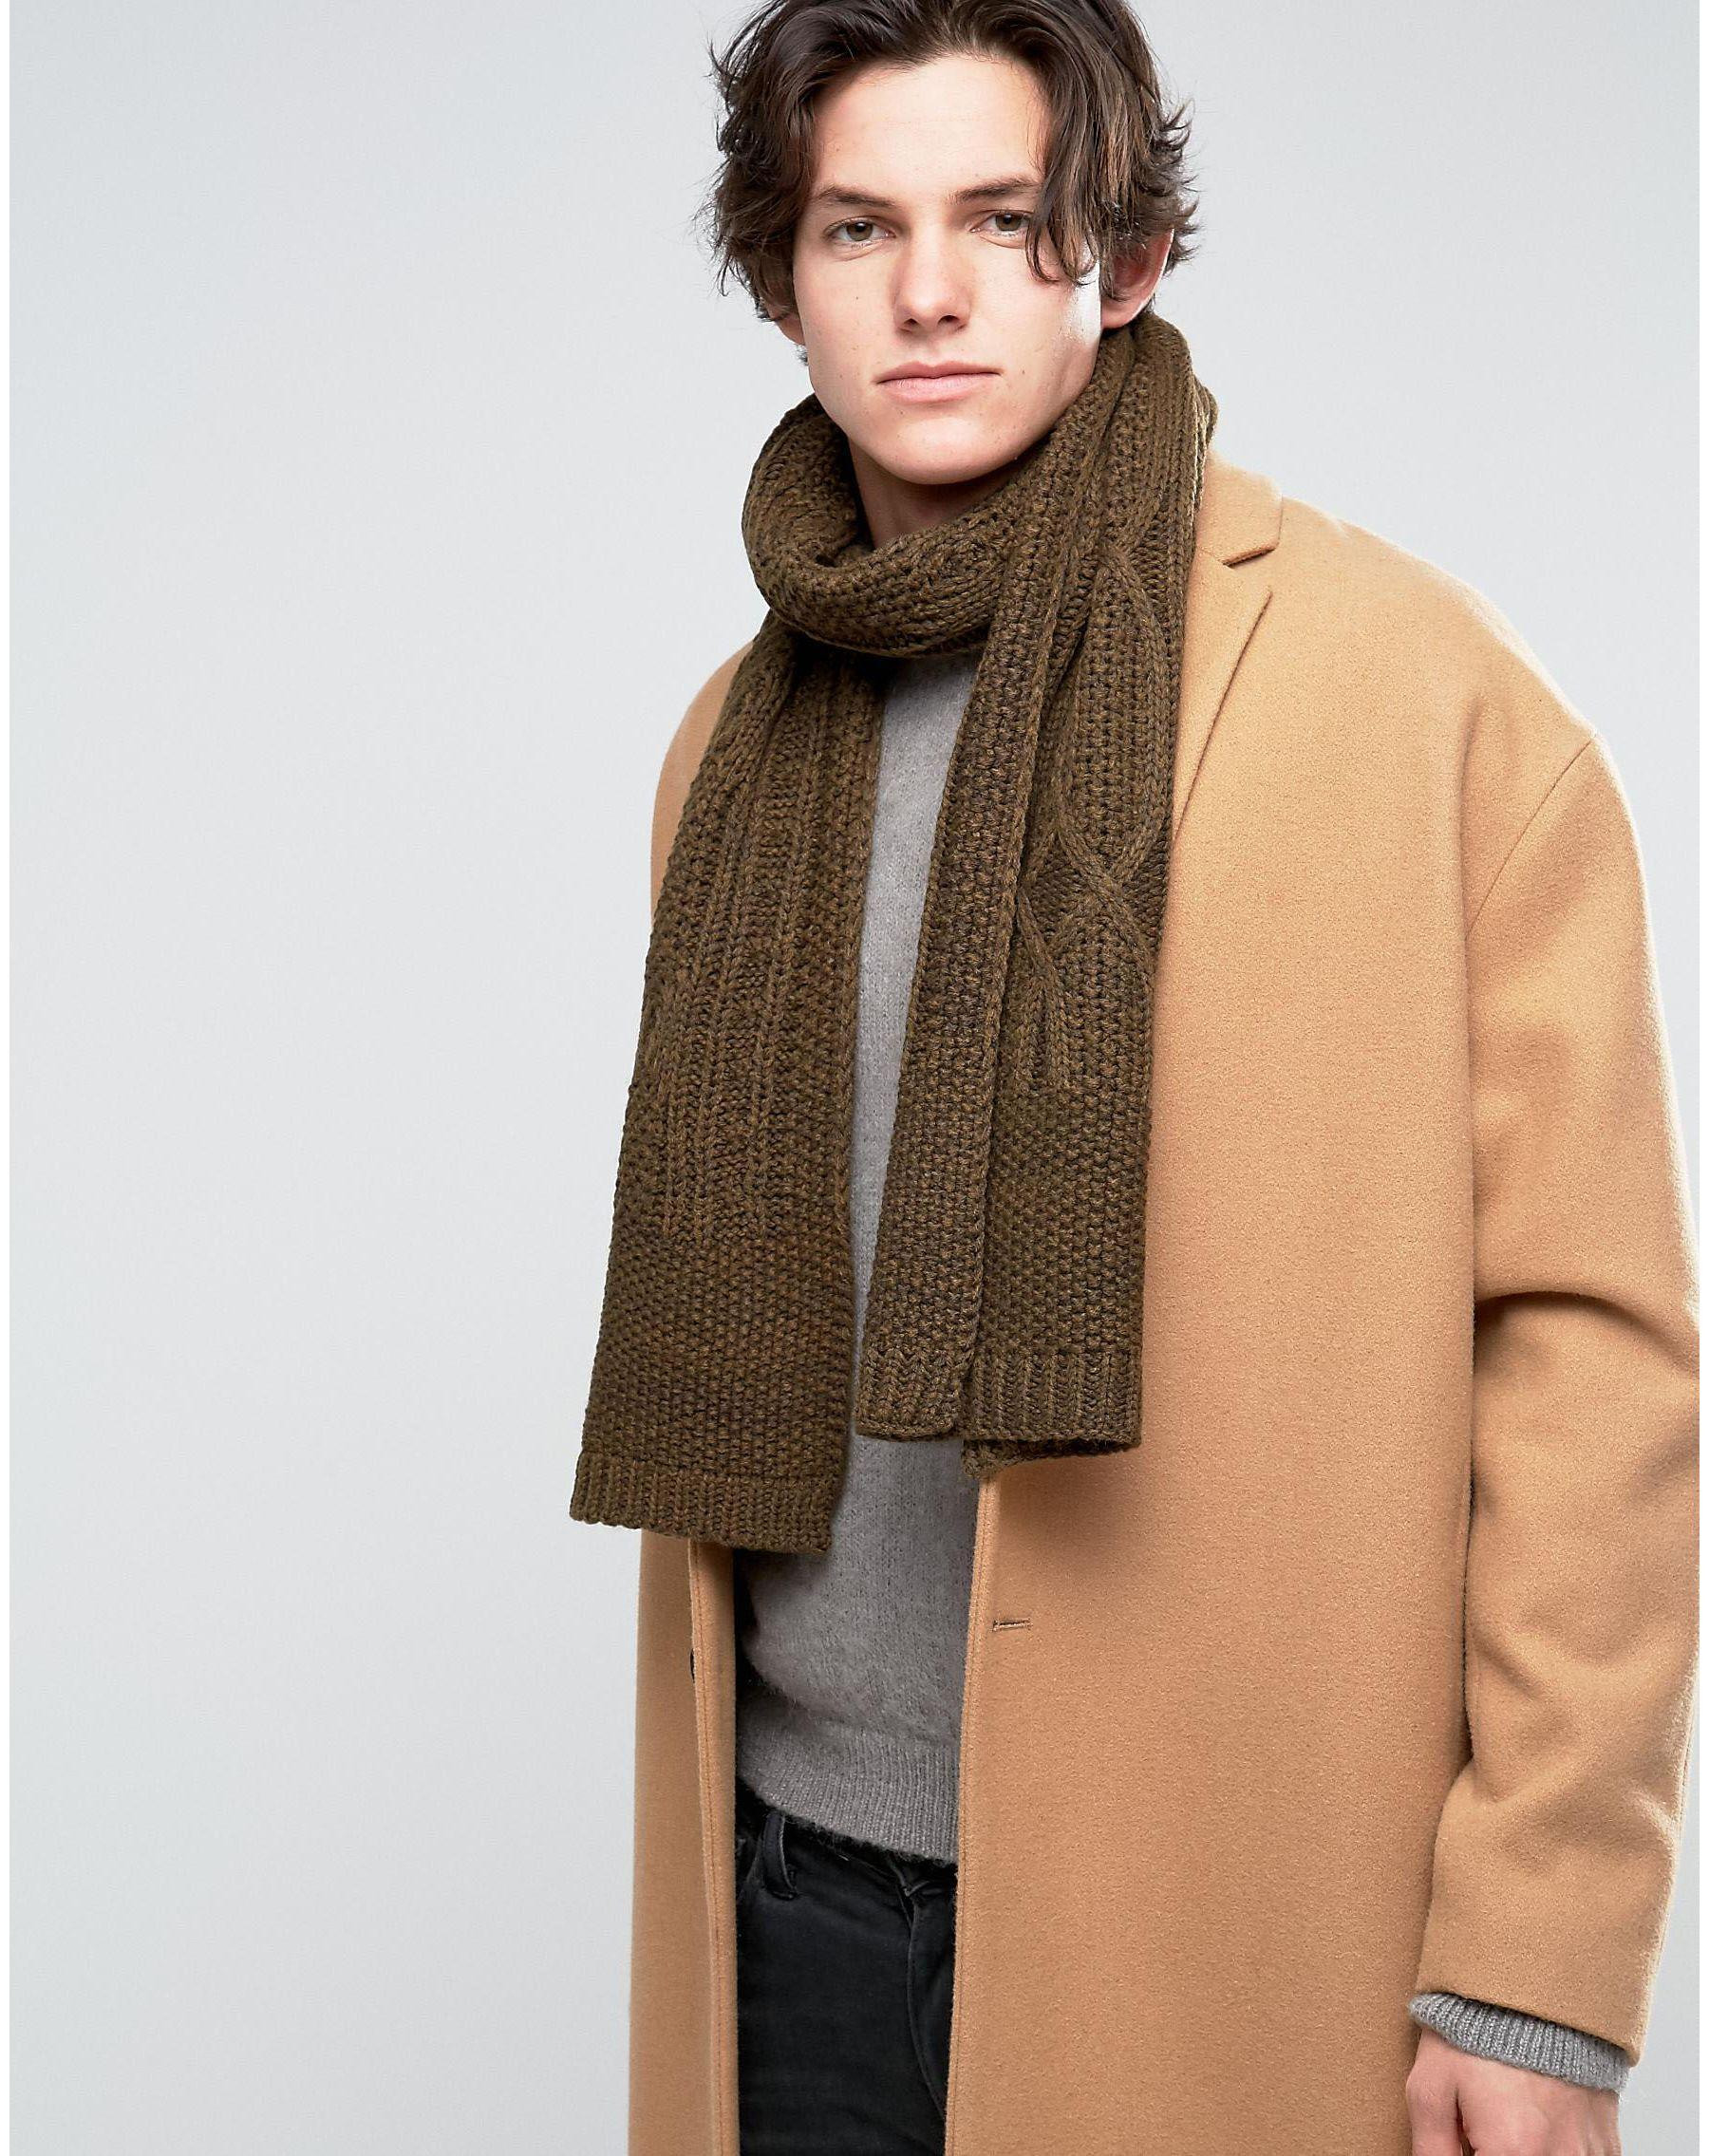 Lyst New Look Cable Knit Scarf In Khaki in Green for Men